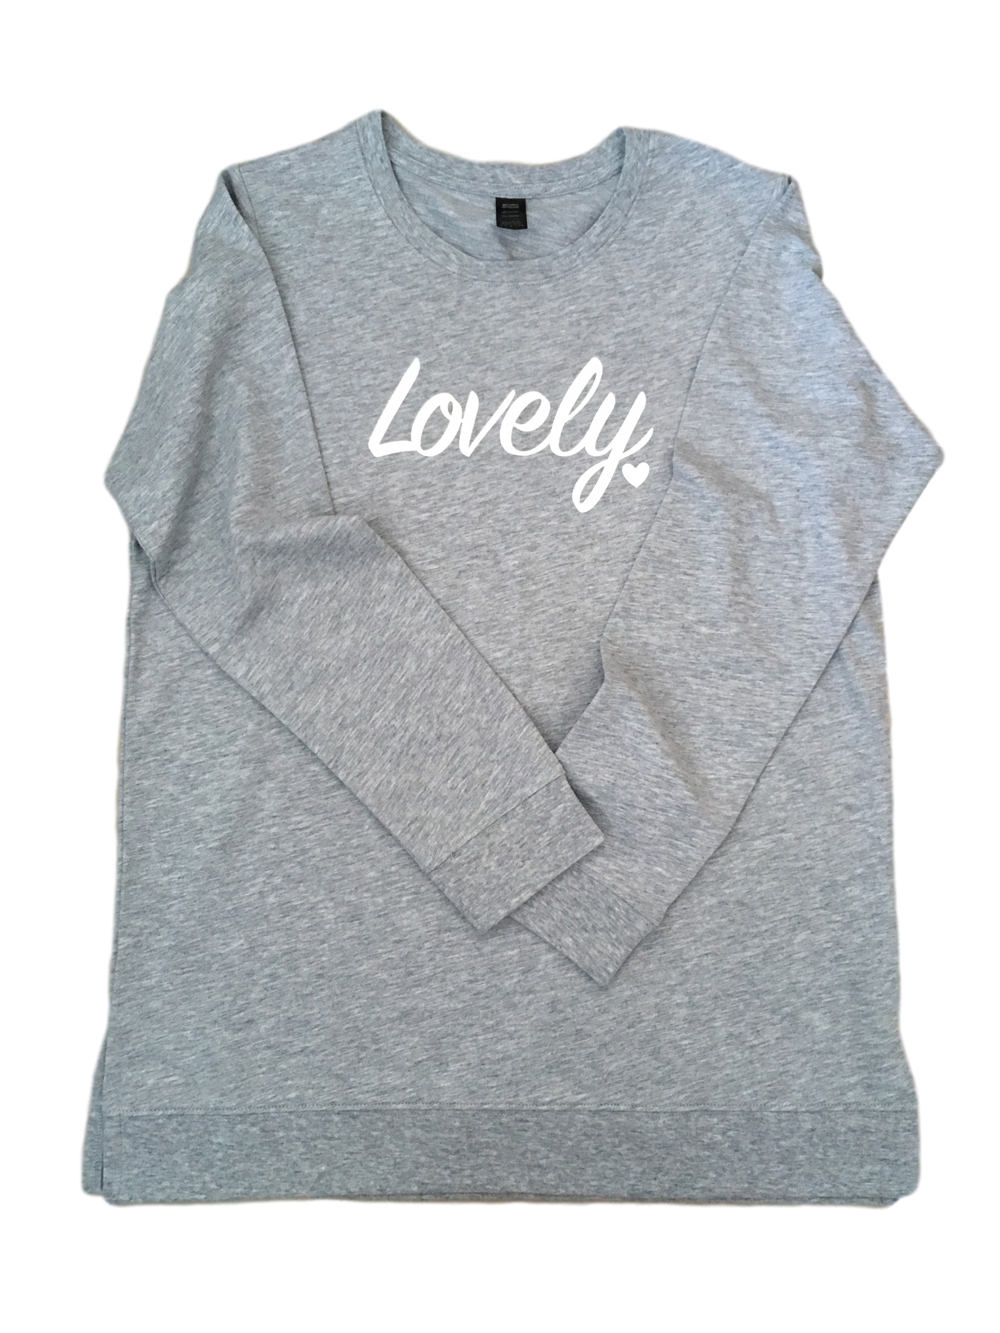 ADULT – Grey Lovely Sweatshirt – Small